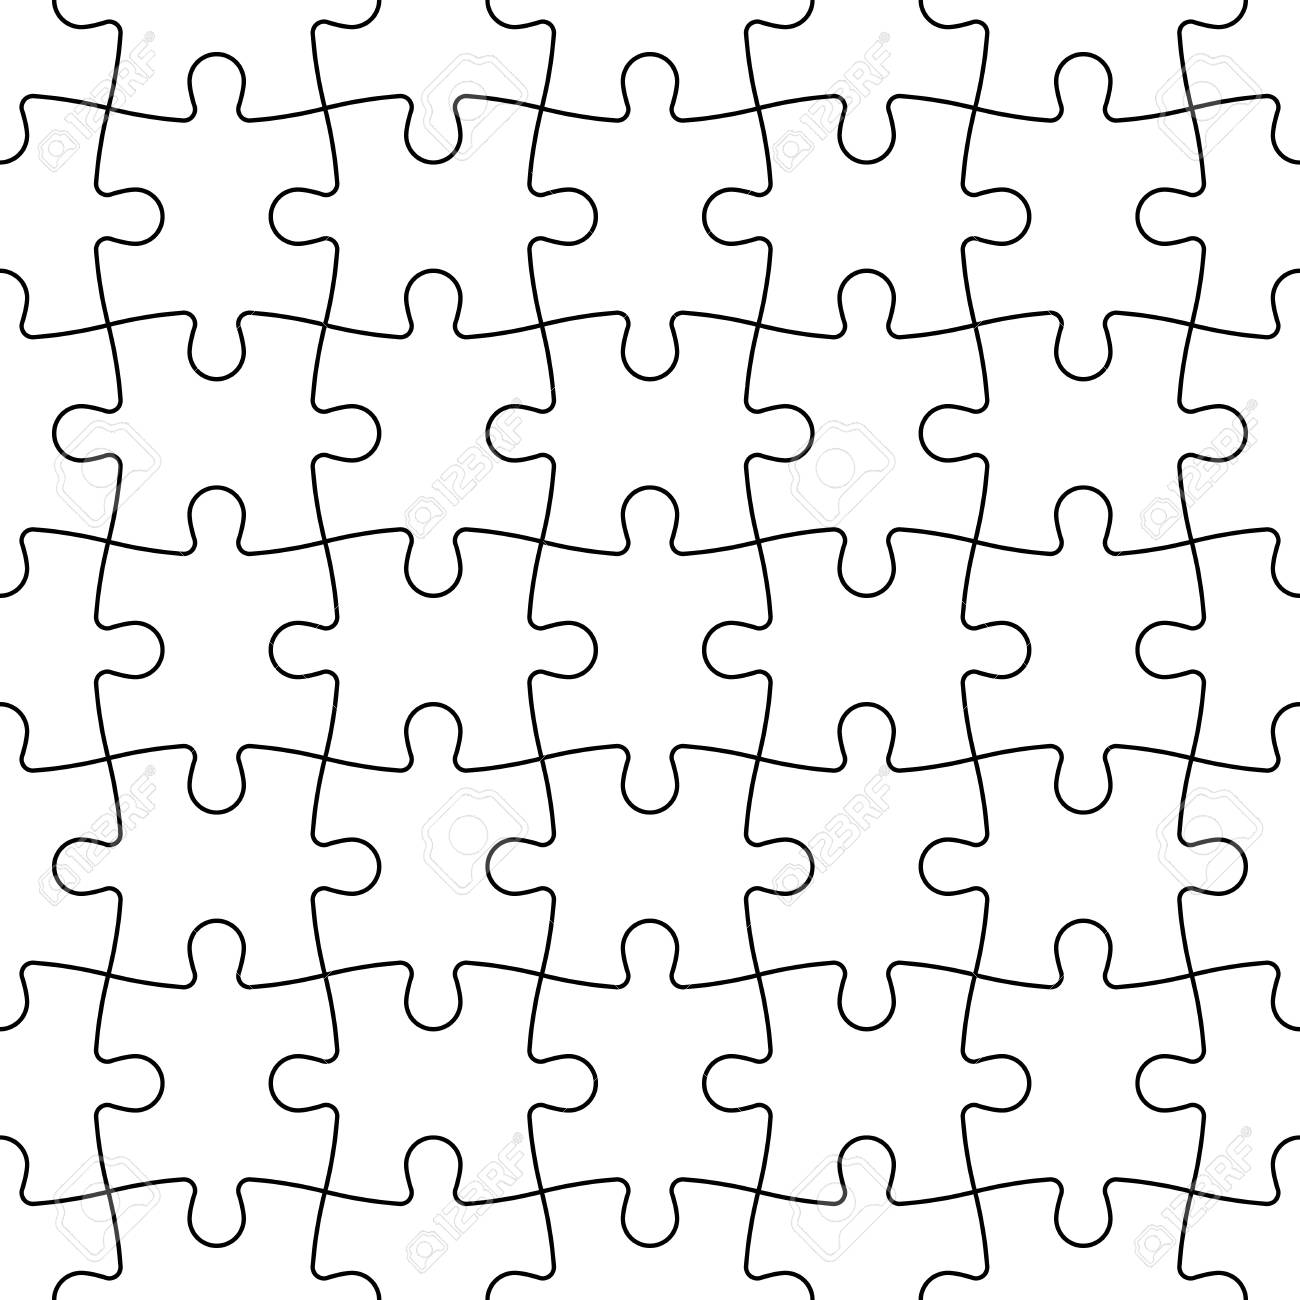 Jigsaw Puzzle Seamless Background Mosaic Of White Pieces With Black Outline In Linear Arrangement